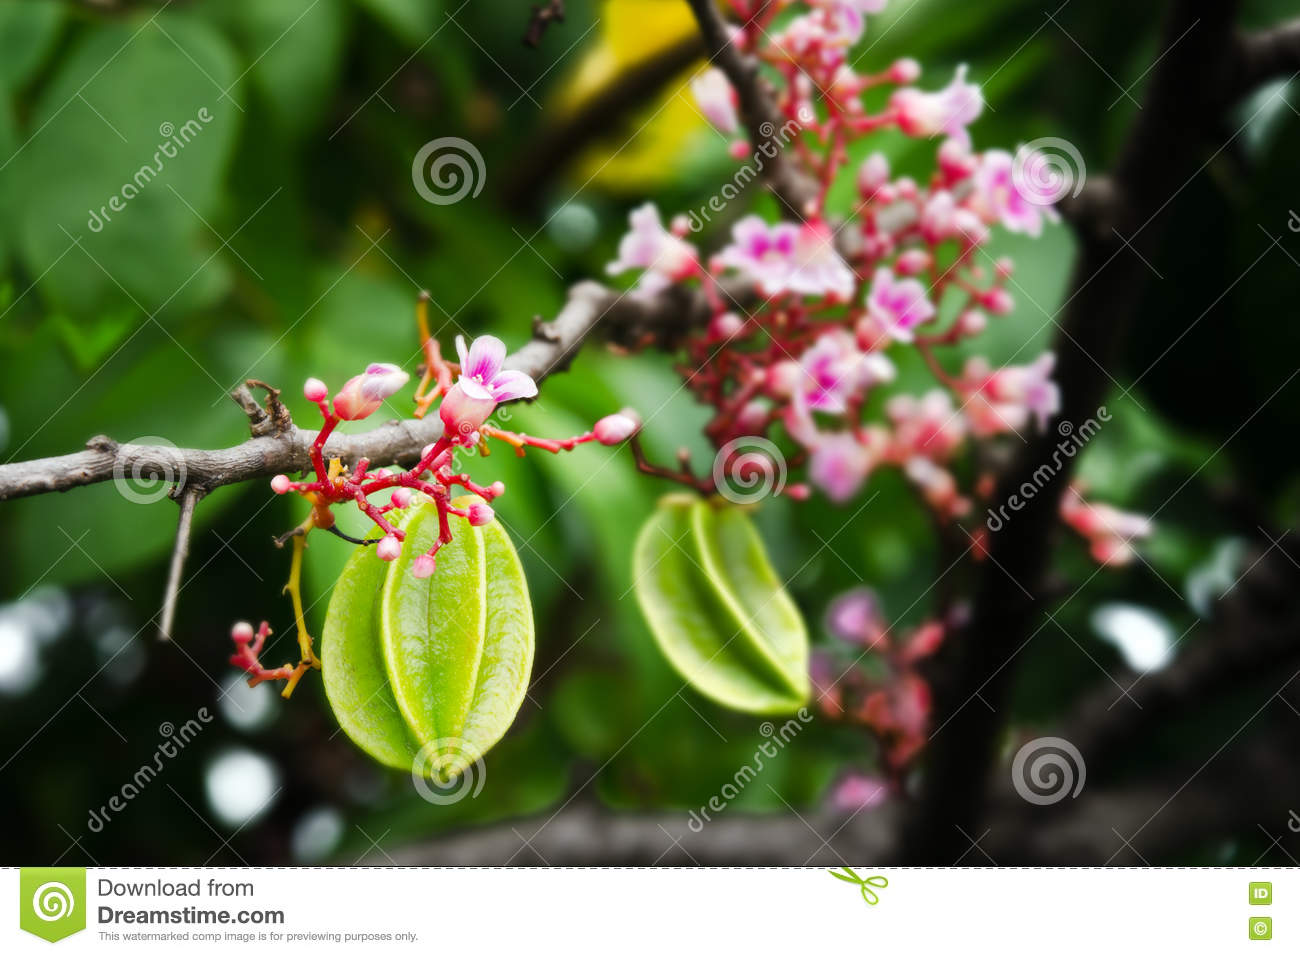 Star apple fruit hanging with flower on the tree